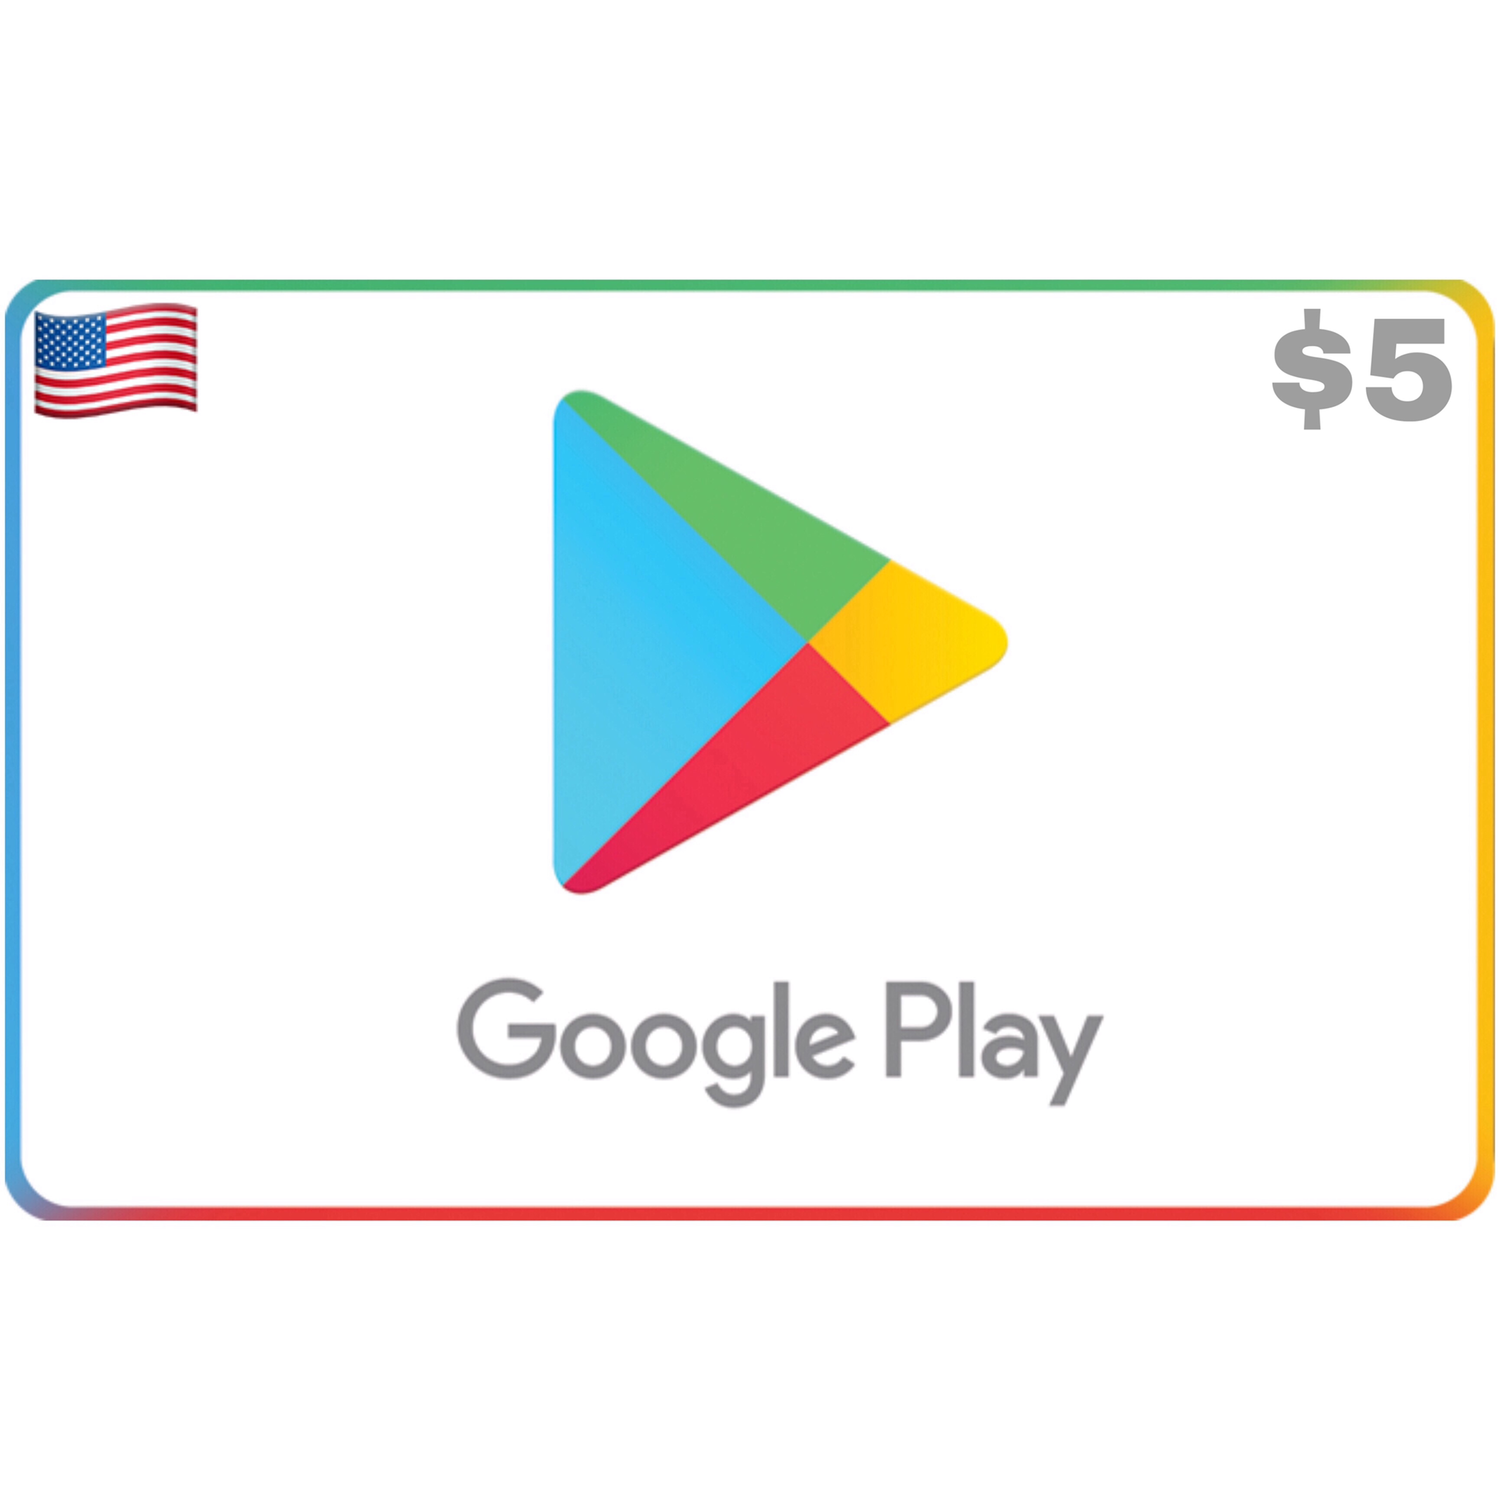 Google Play US USD $5